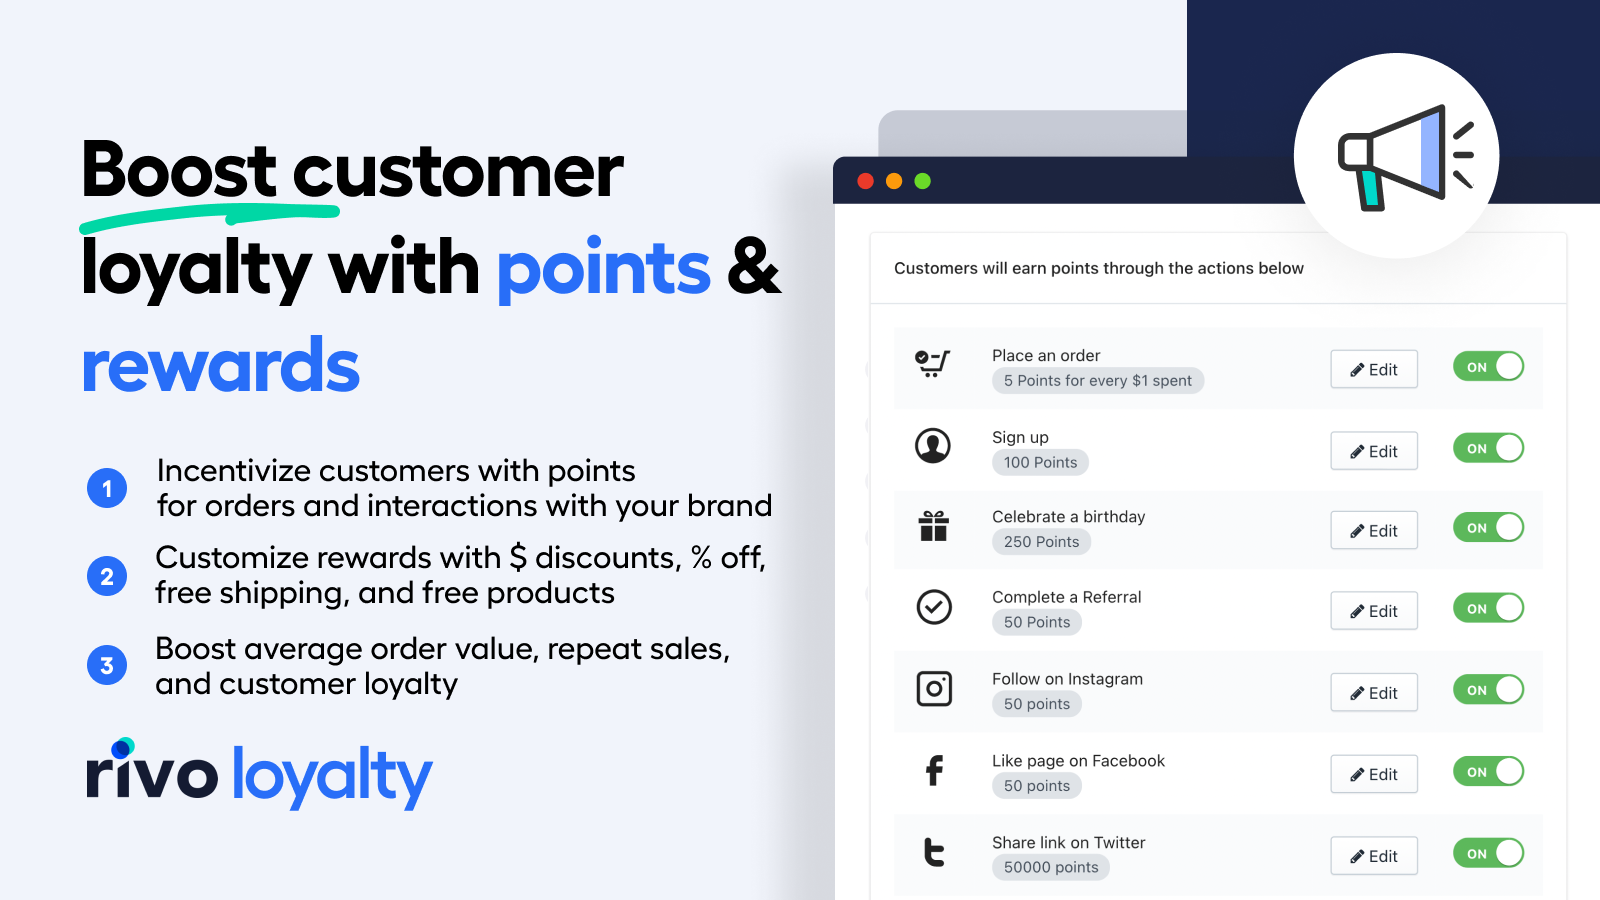 Reward loyalty customers with points and rewards